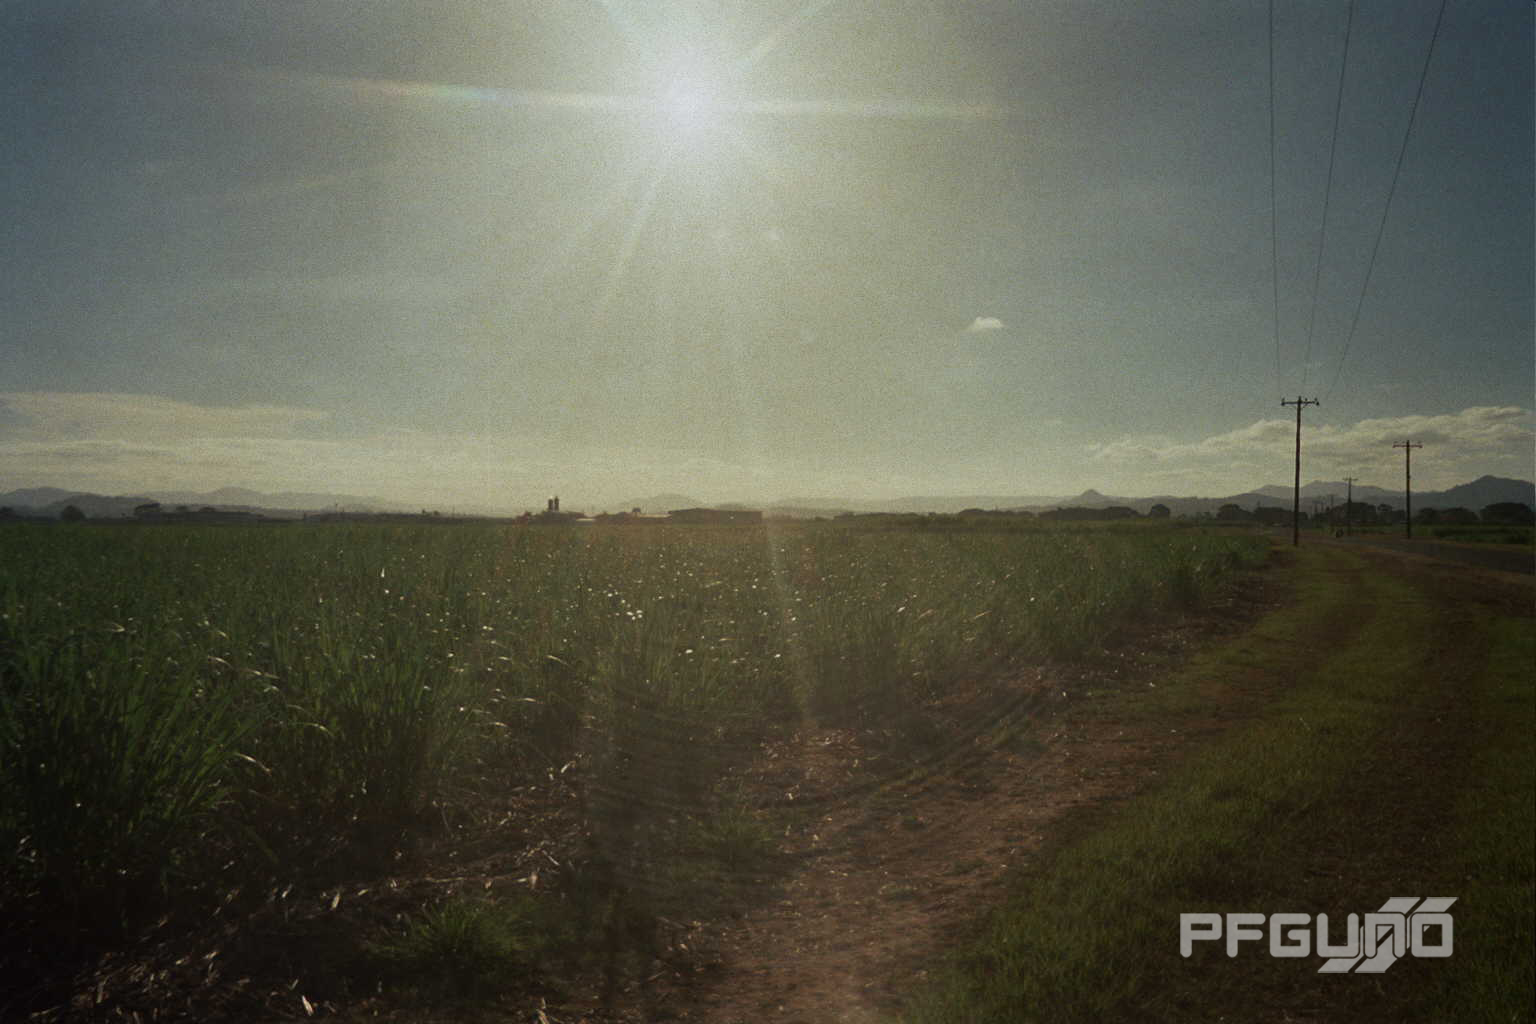 Sunshine Over Cane Fields [SHOT 2]